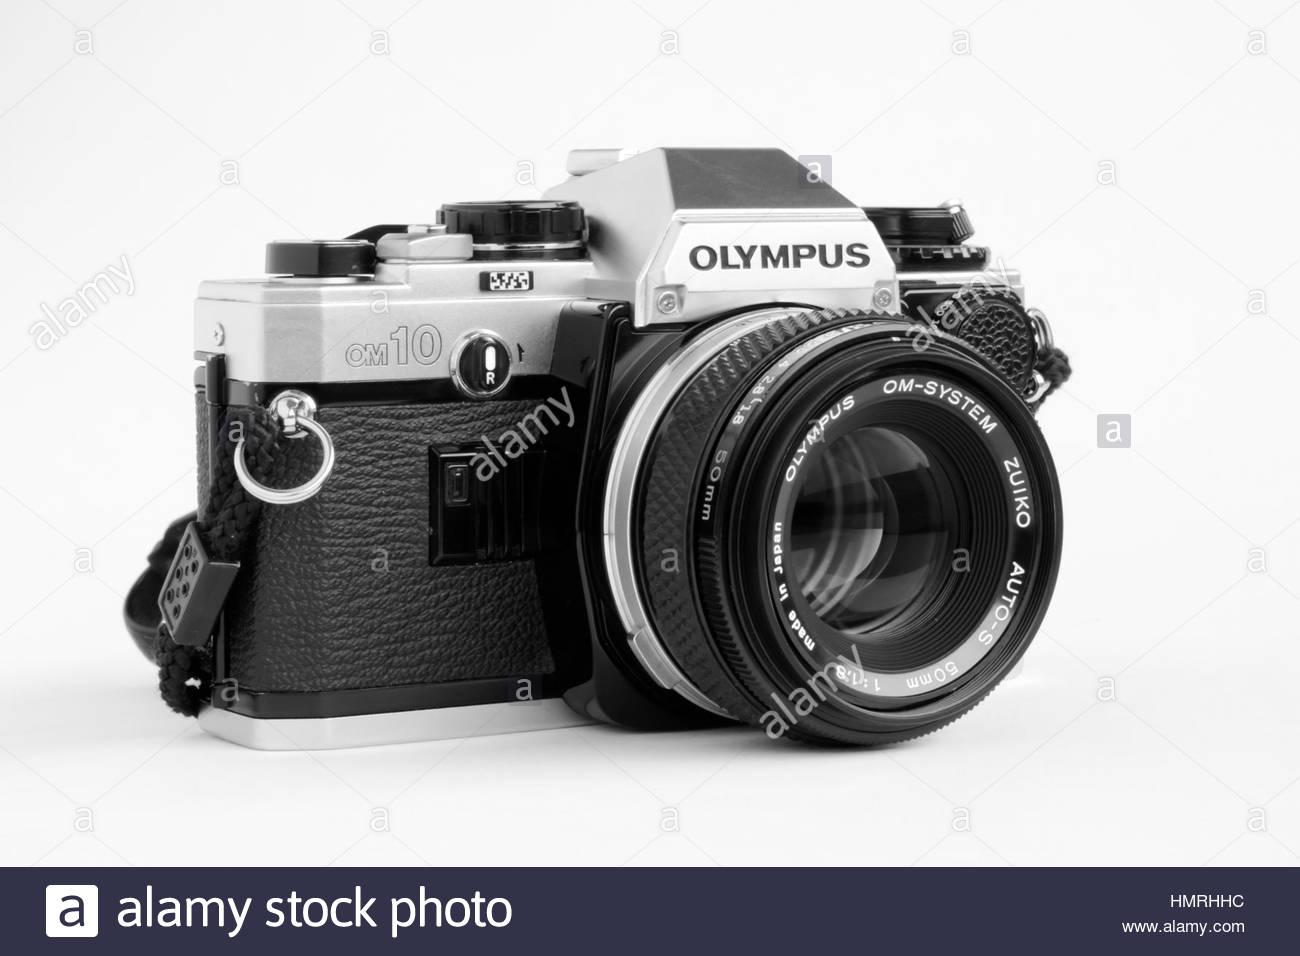 Olympus om10 35mm film camera black and white